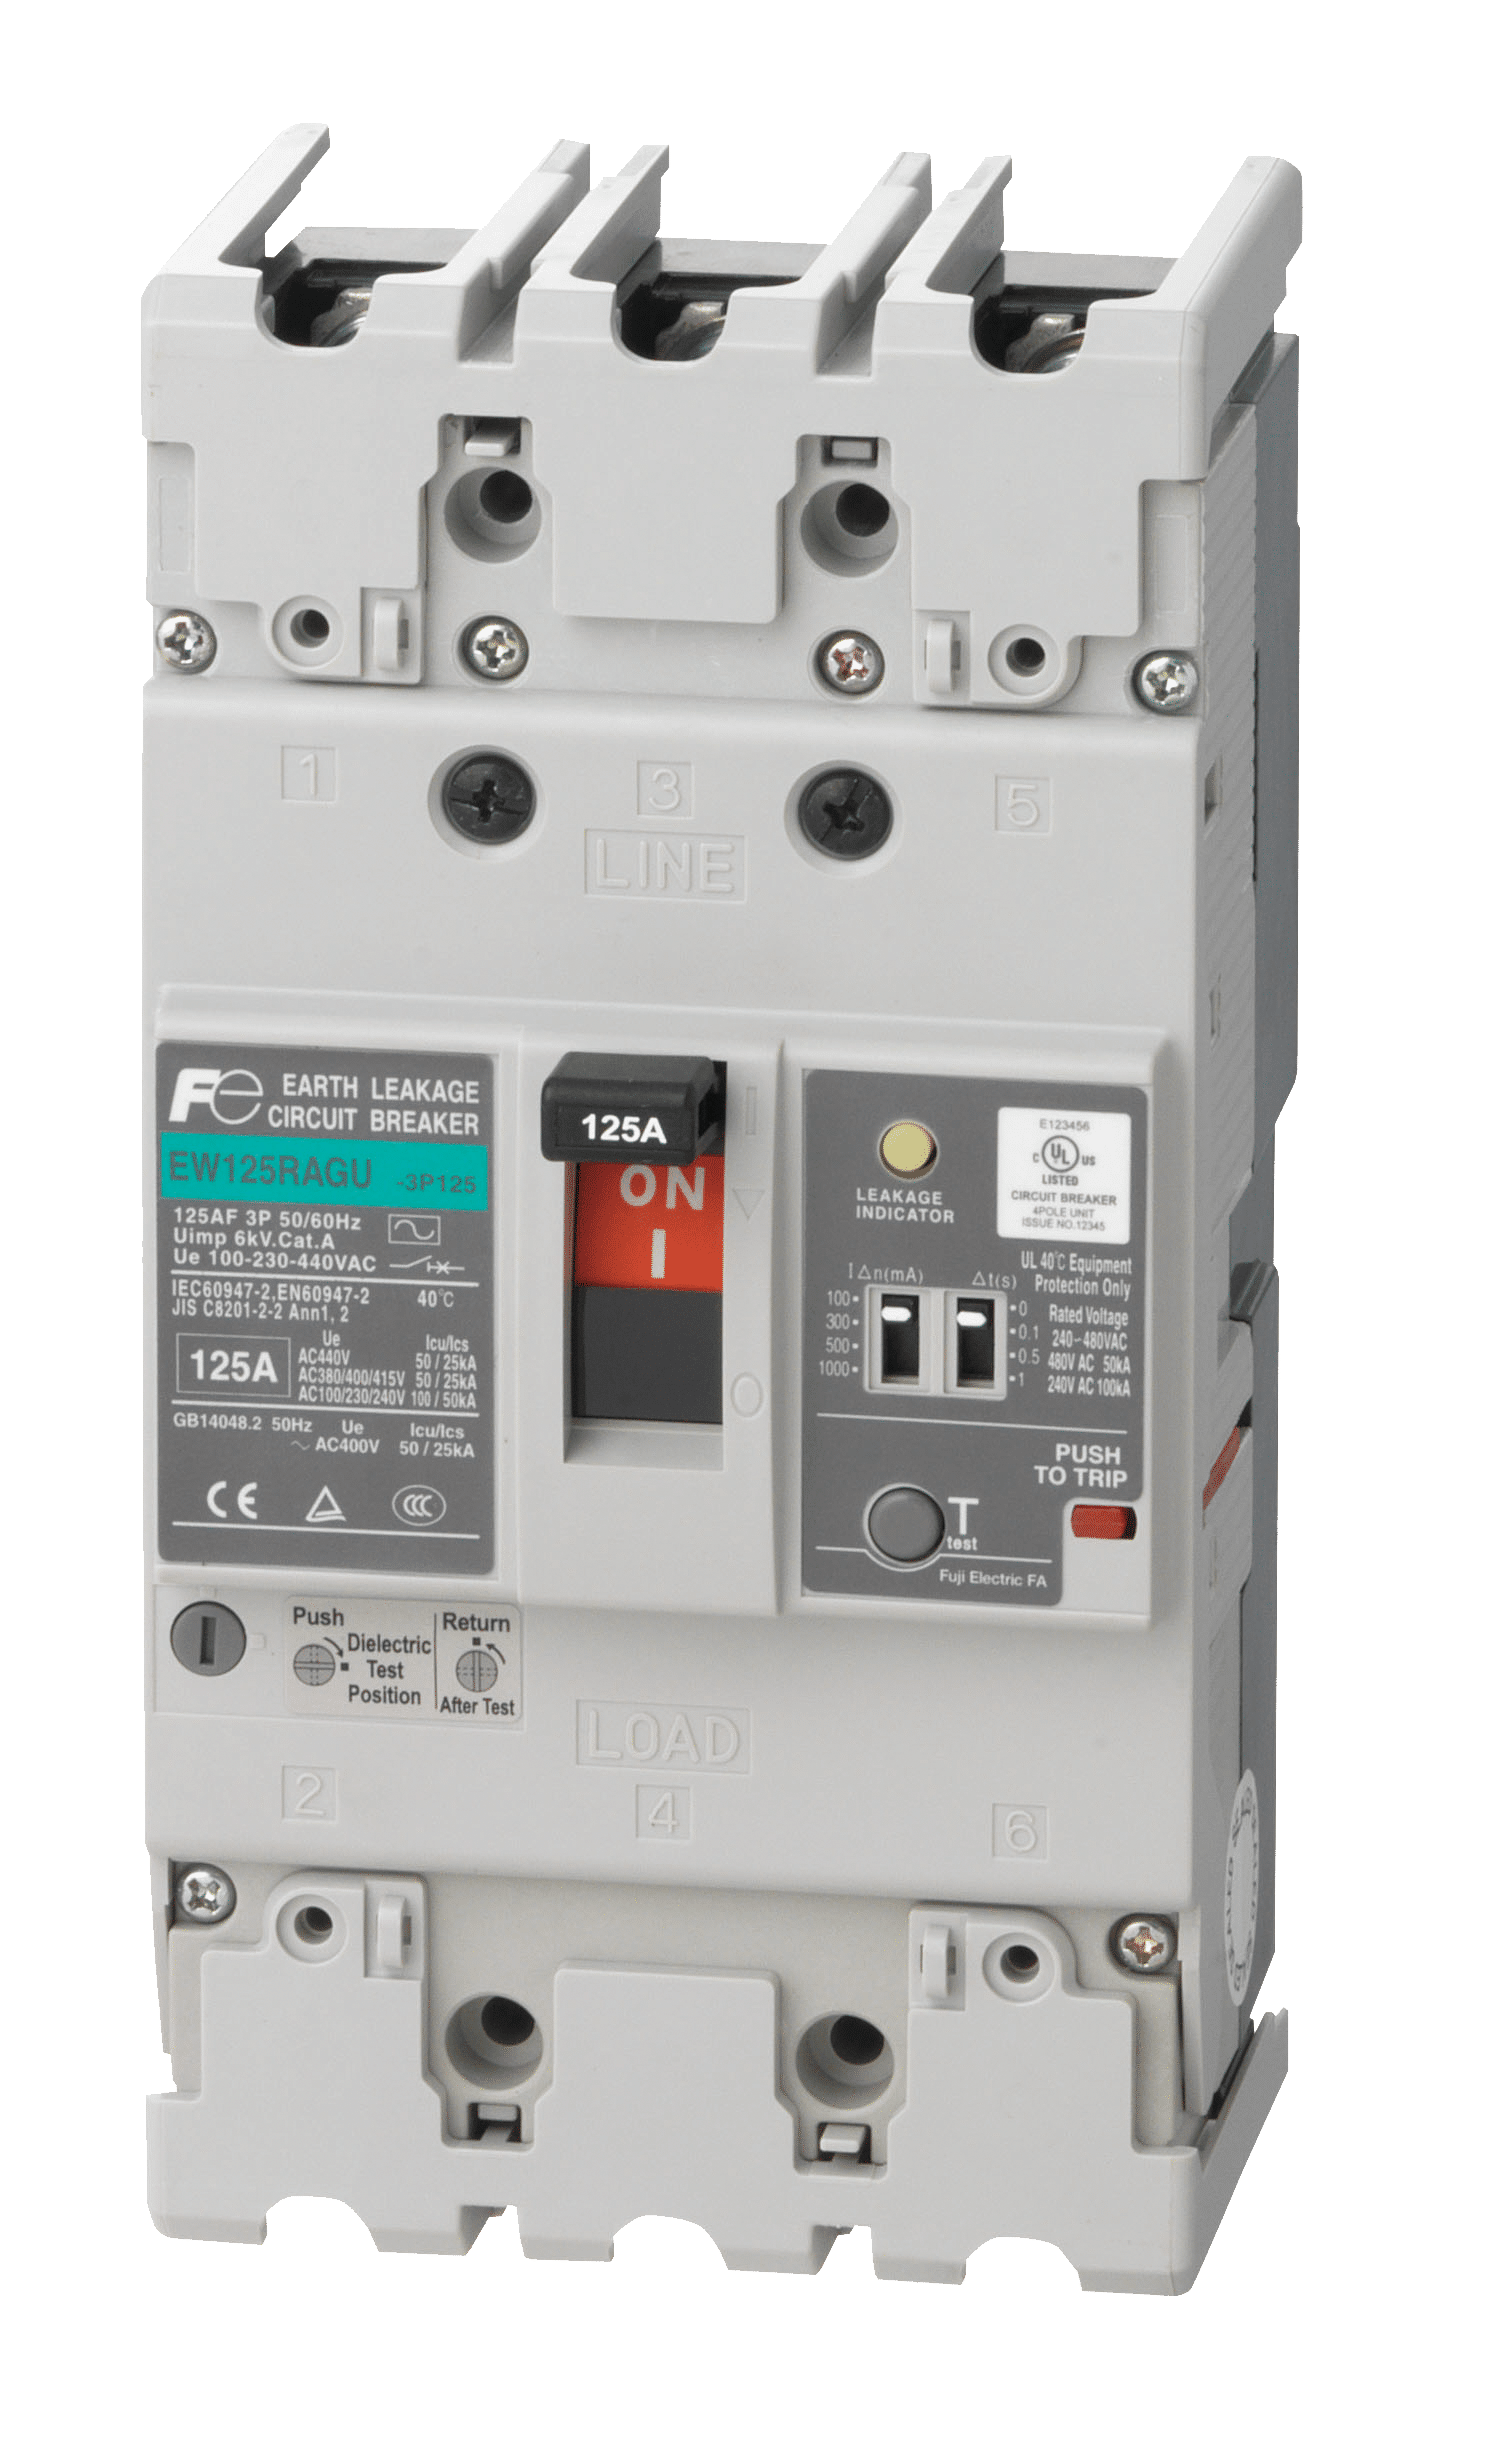 Earth Leakage Circuit Breaker Elcb Manufacturer Fuji Electric Protection For Induction Motor Your Electrical Home Breakers